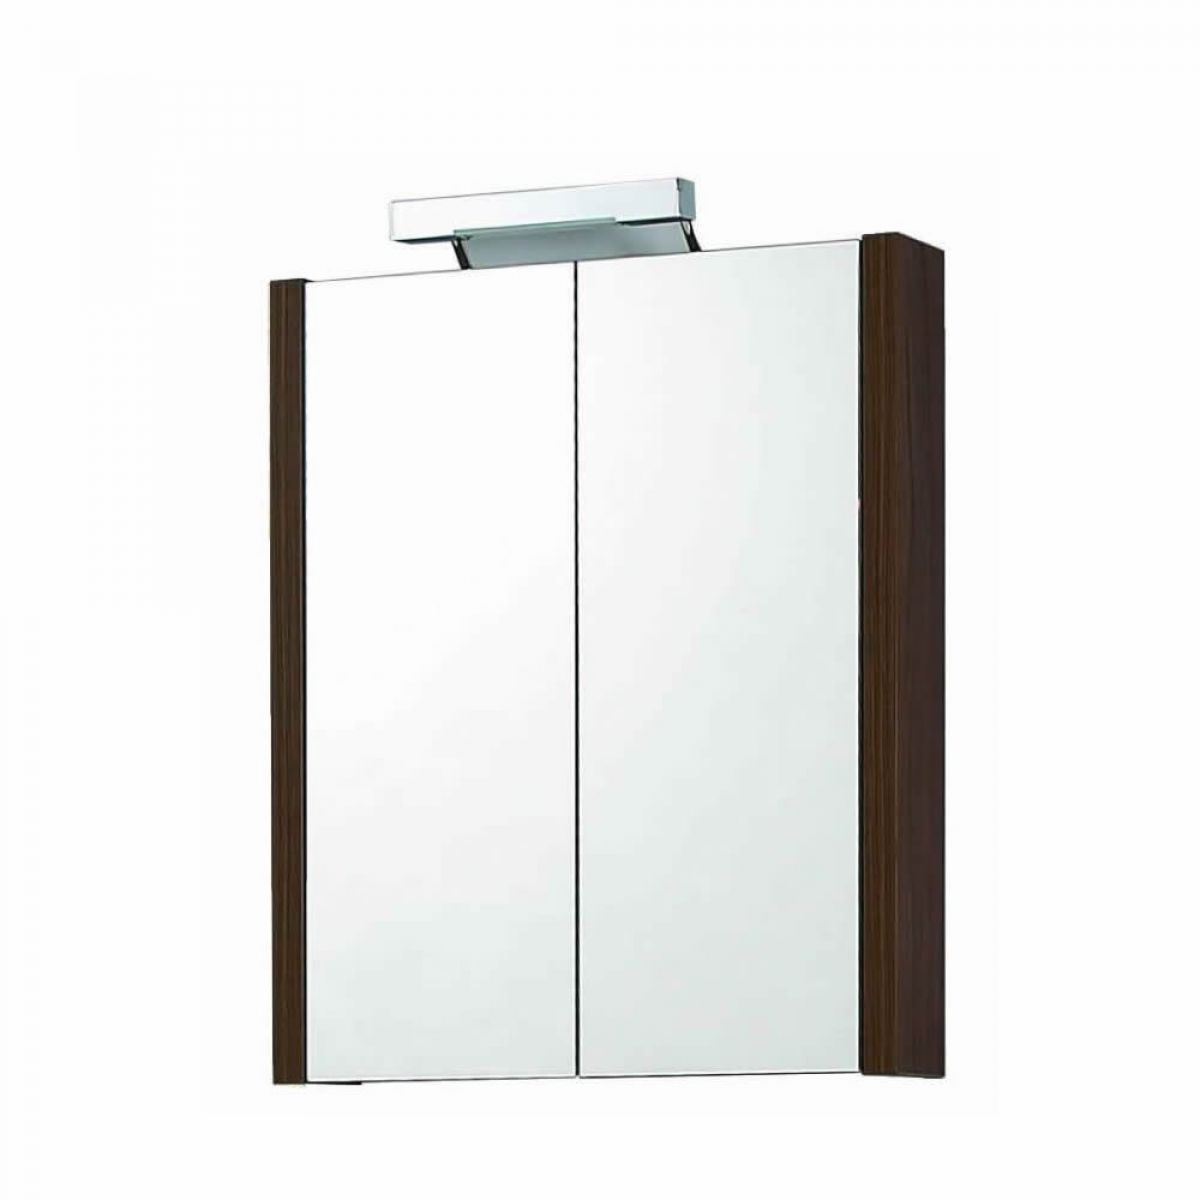 Phoenix whirlpool products available at ukbathrooms for Wenge bathroom mirror